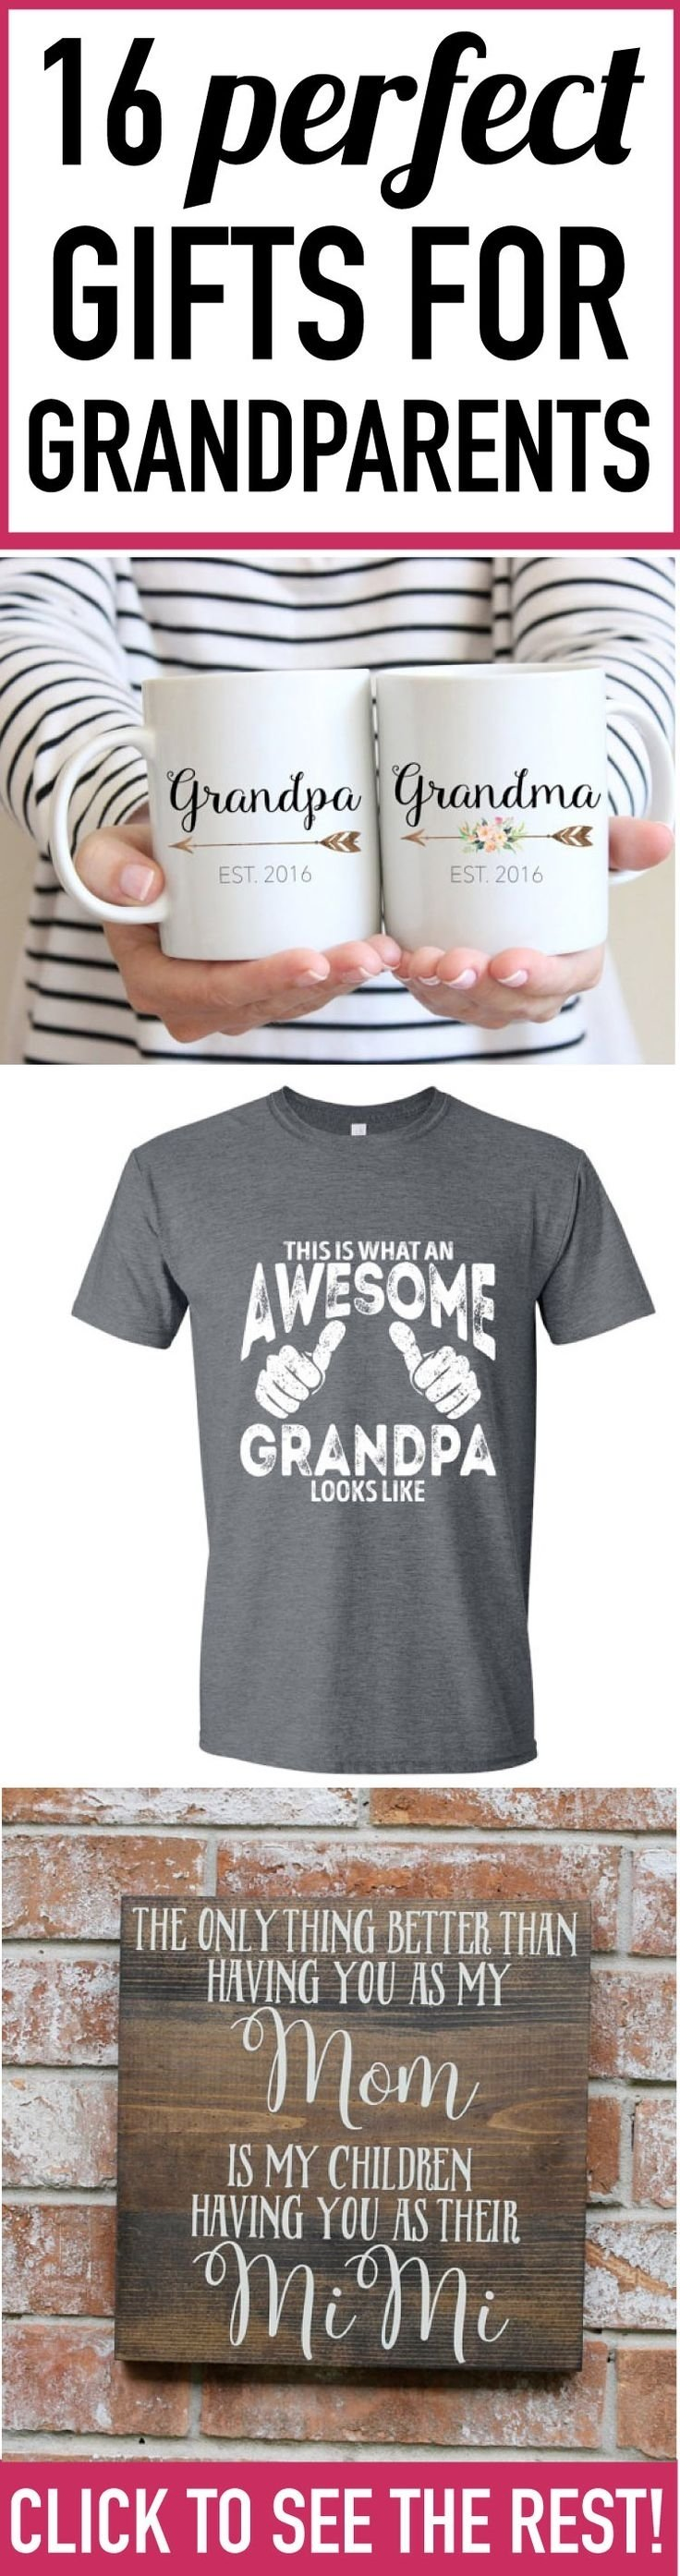 10 Fantastic Gift Ideas For New Grandparents